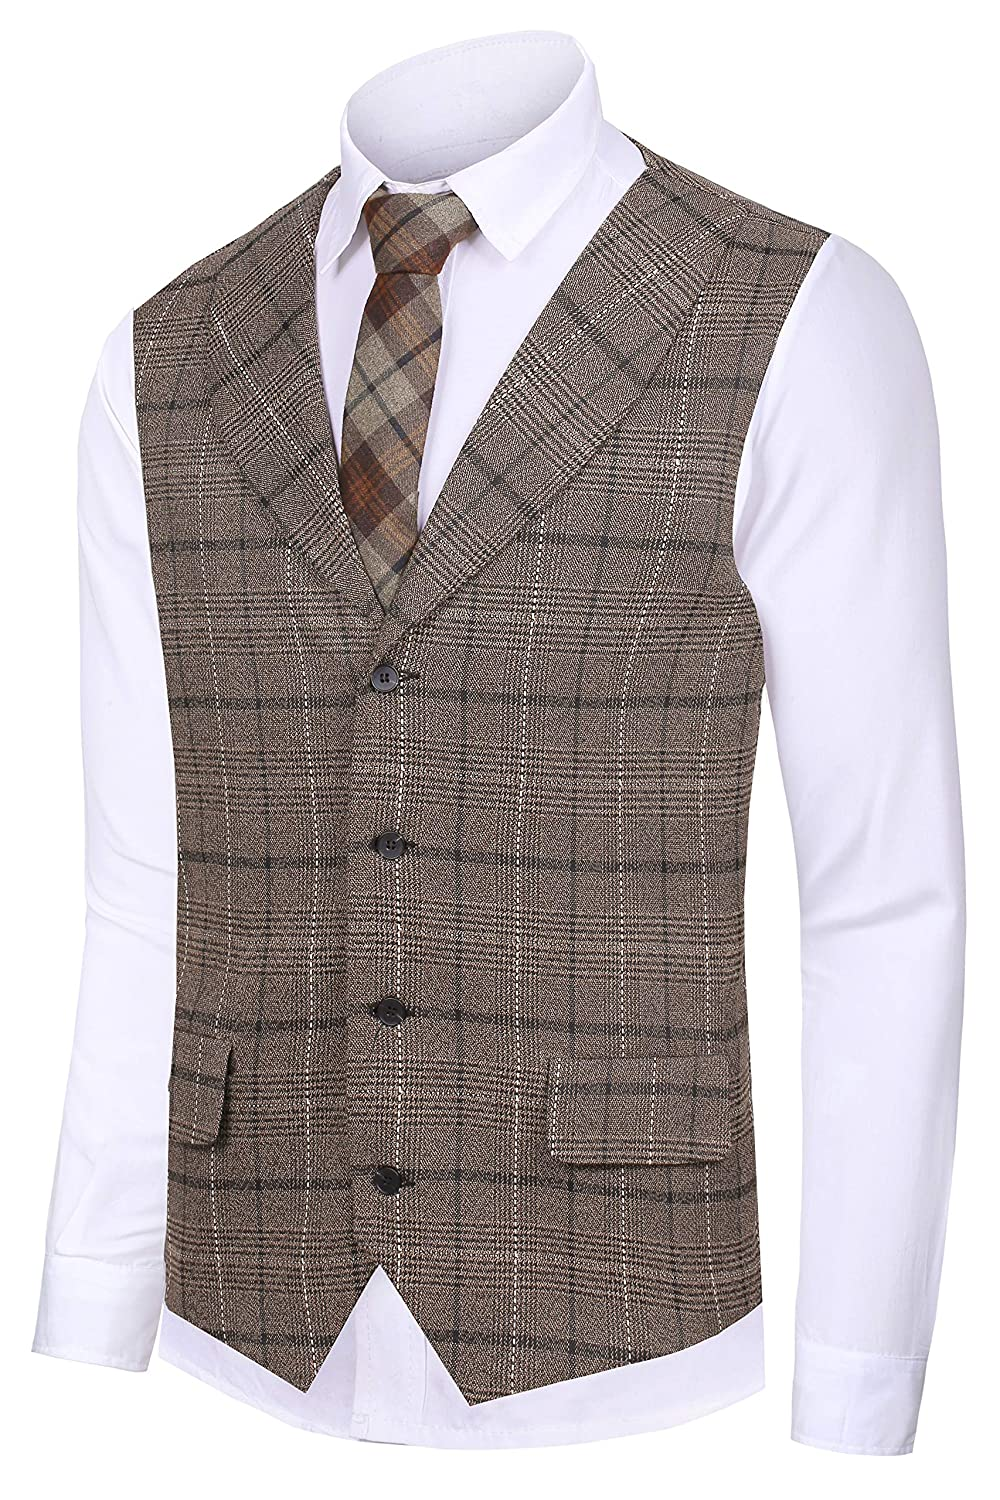 Edwardian Men's Fashion & Clothing Hanayome Mens Gentleman Top Design Casual Waistcoat Business Suit Vest VS17 $29.90 AT vintagedancer.com